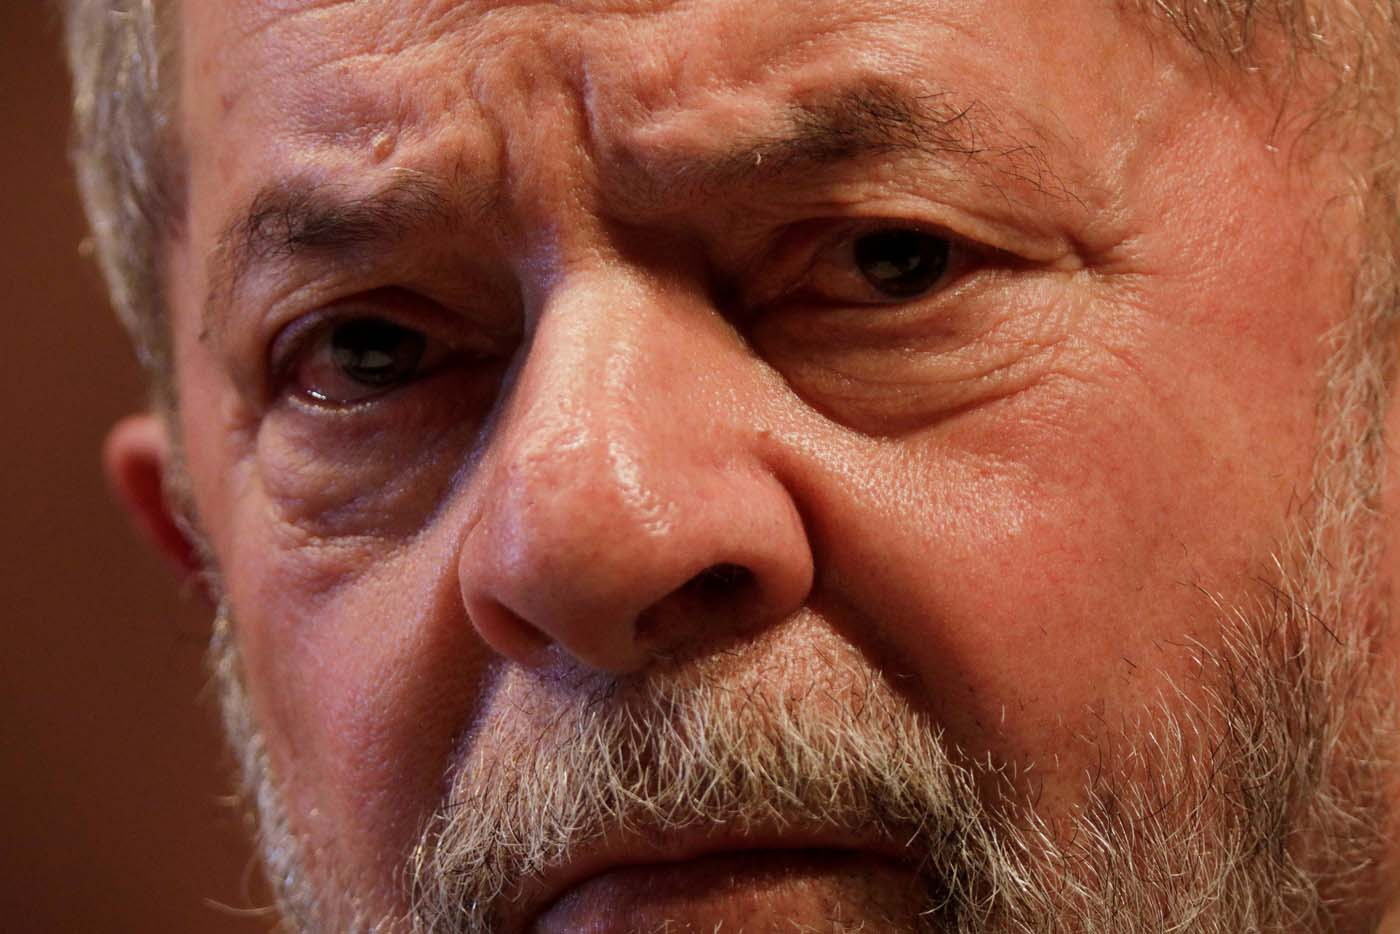 Former Brazilian President Luiz Inacio Lula da Silva looks on during the inauguration of the new National Directory of the Workers' Party, in Brasilia, Brazil July 5, 2017. REUTERS/Ueslei Marcelino